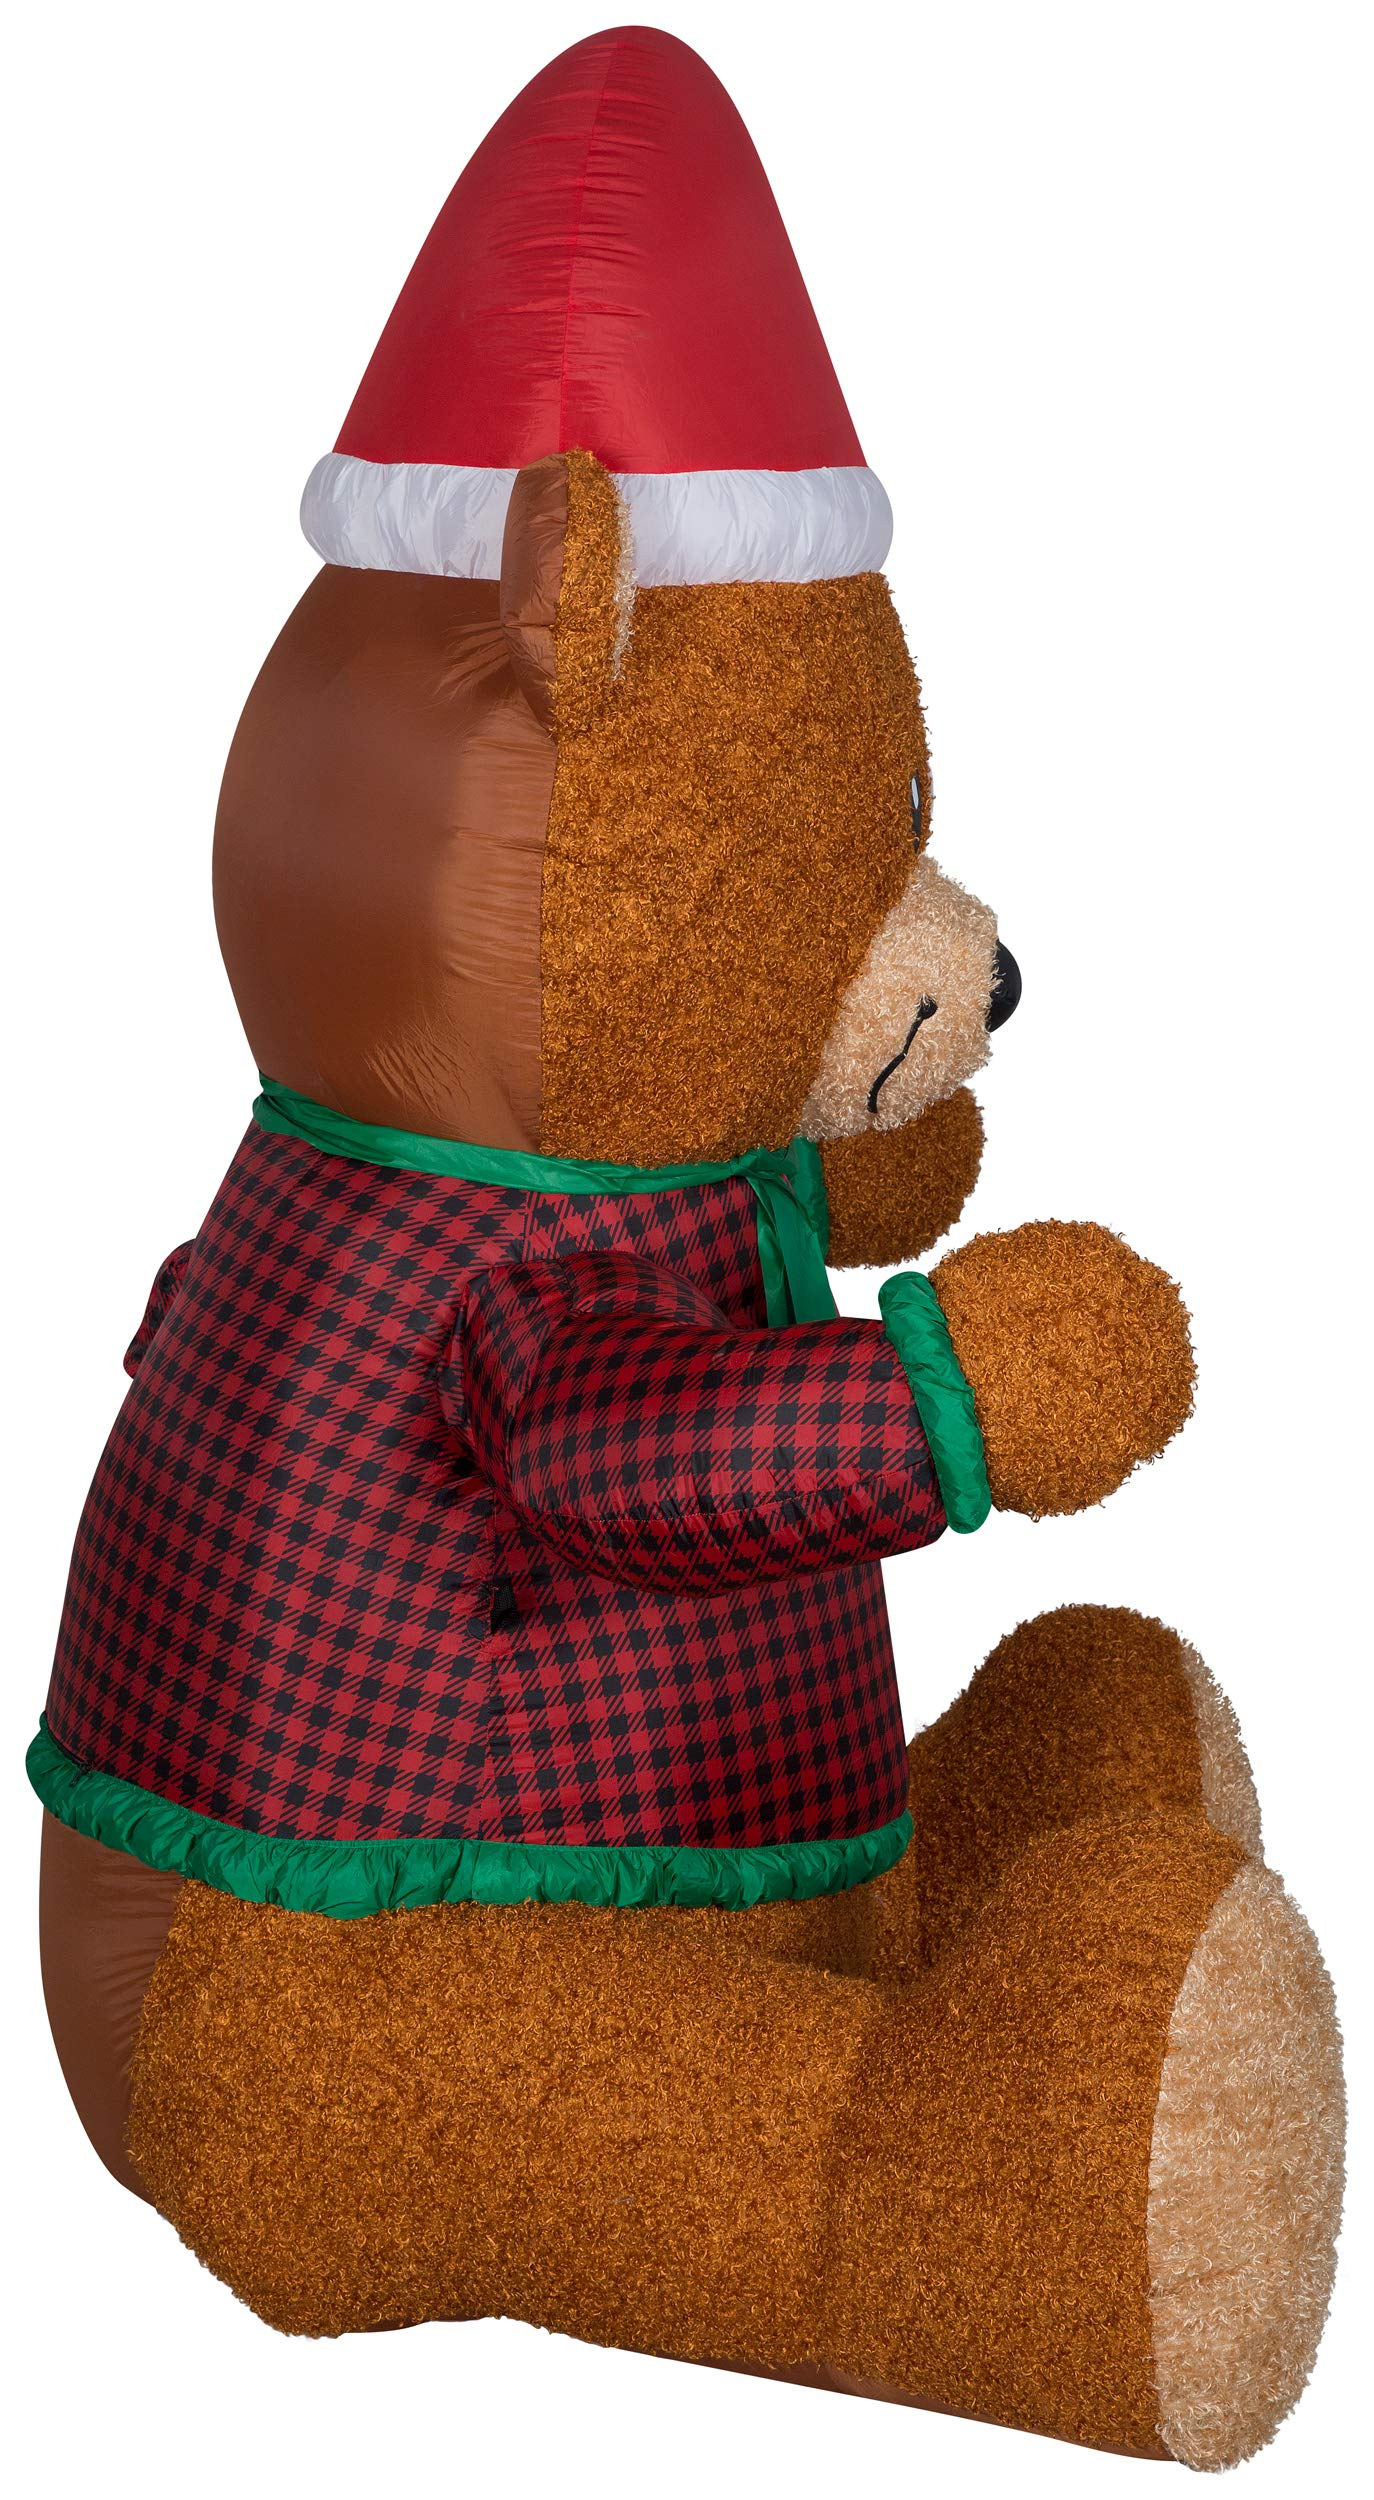 Gemmy 111726 Mixed Media Hugging Teddy Bear-Giant Christmas Inflatable 7FT TALL x 5FT LONG